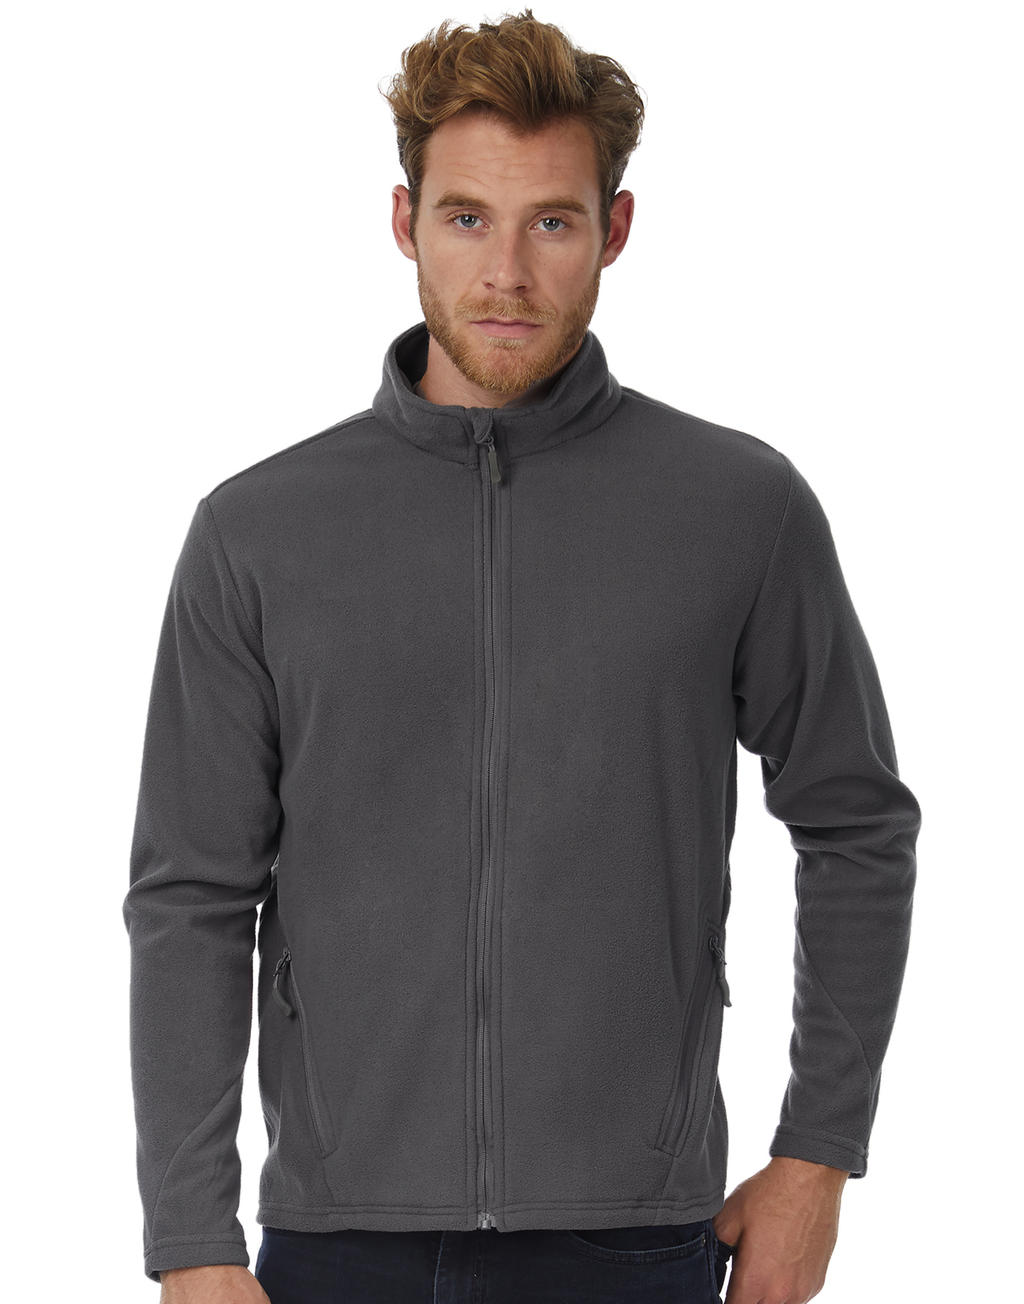 B & C Coolstar/men Fleece Full Zip